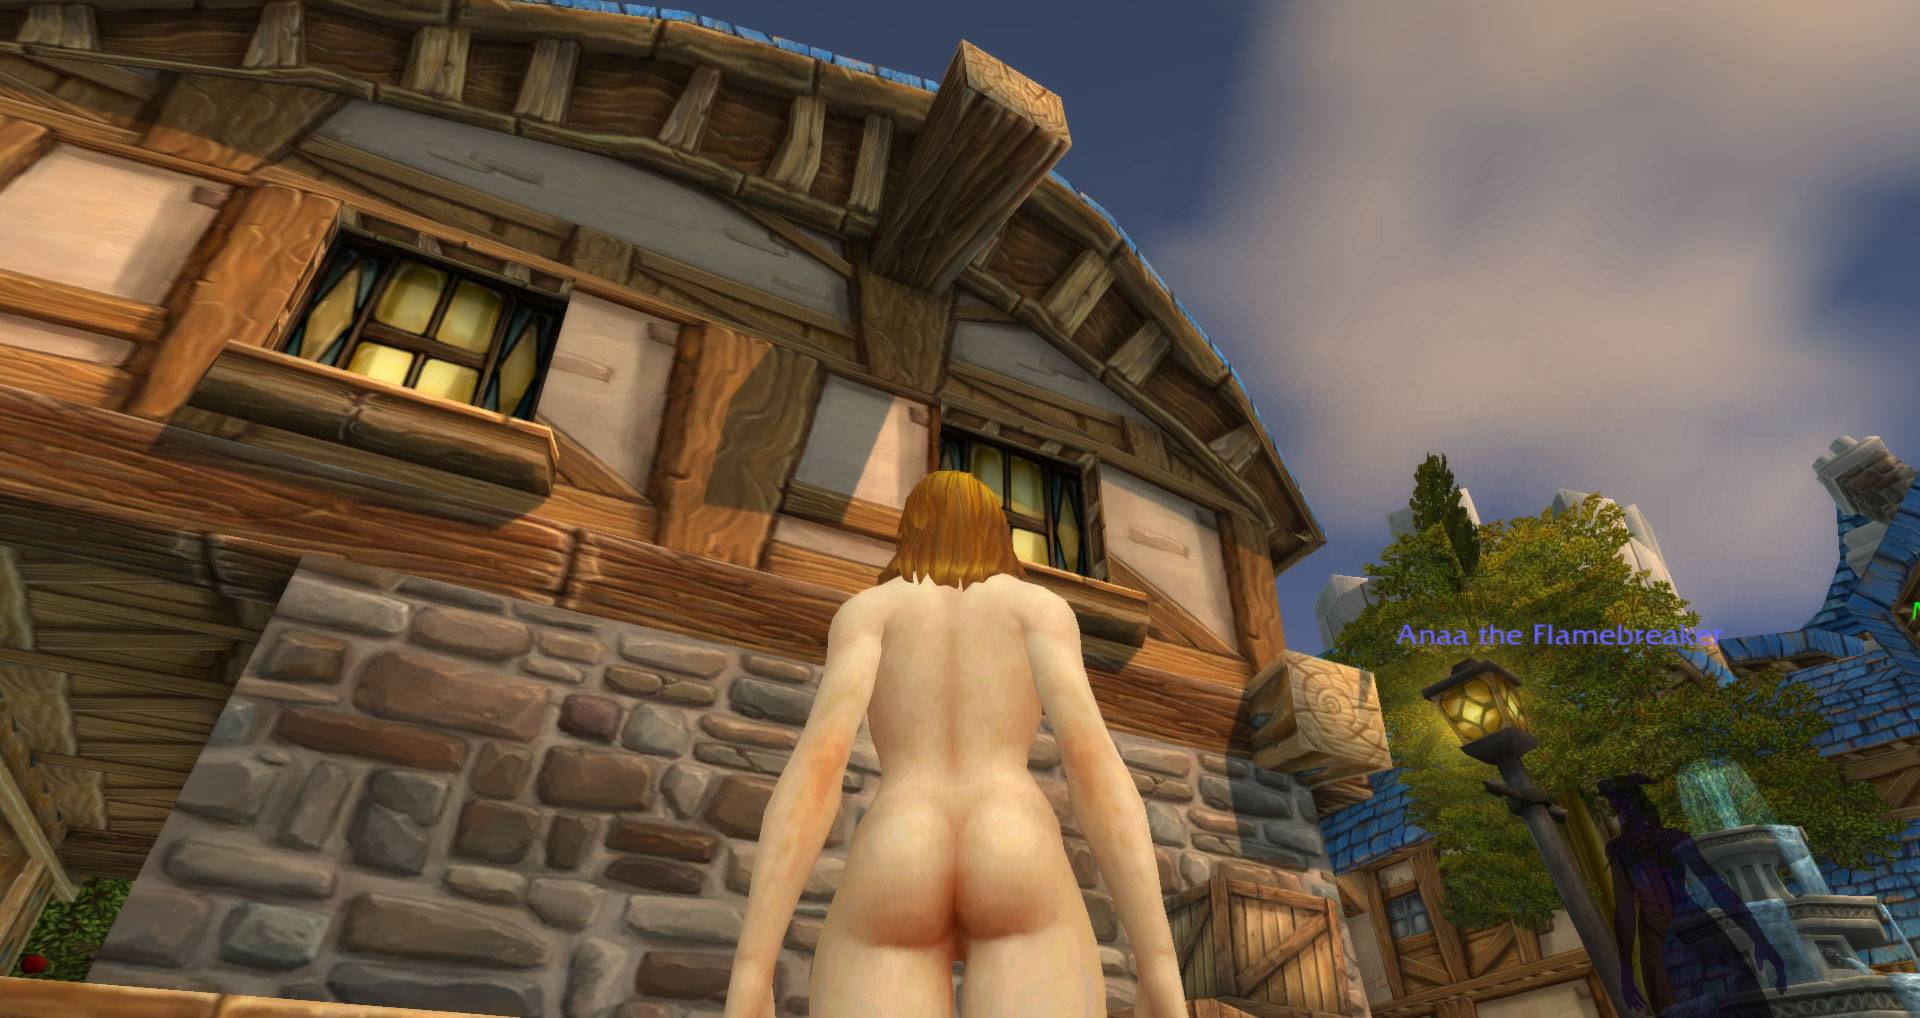 Naked addon world of warcraft erotic photo